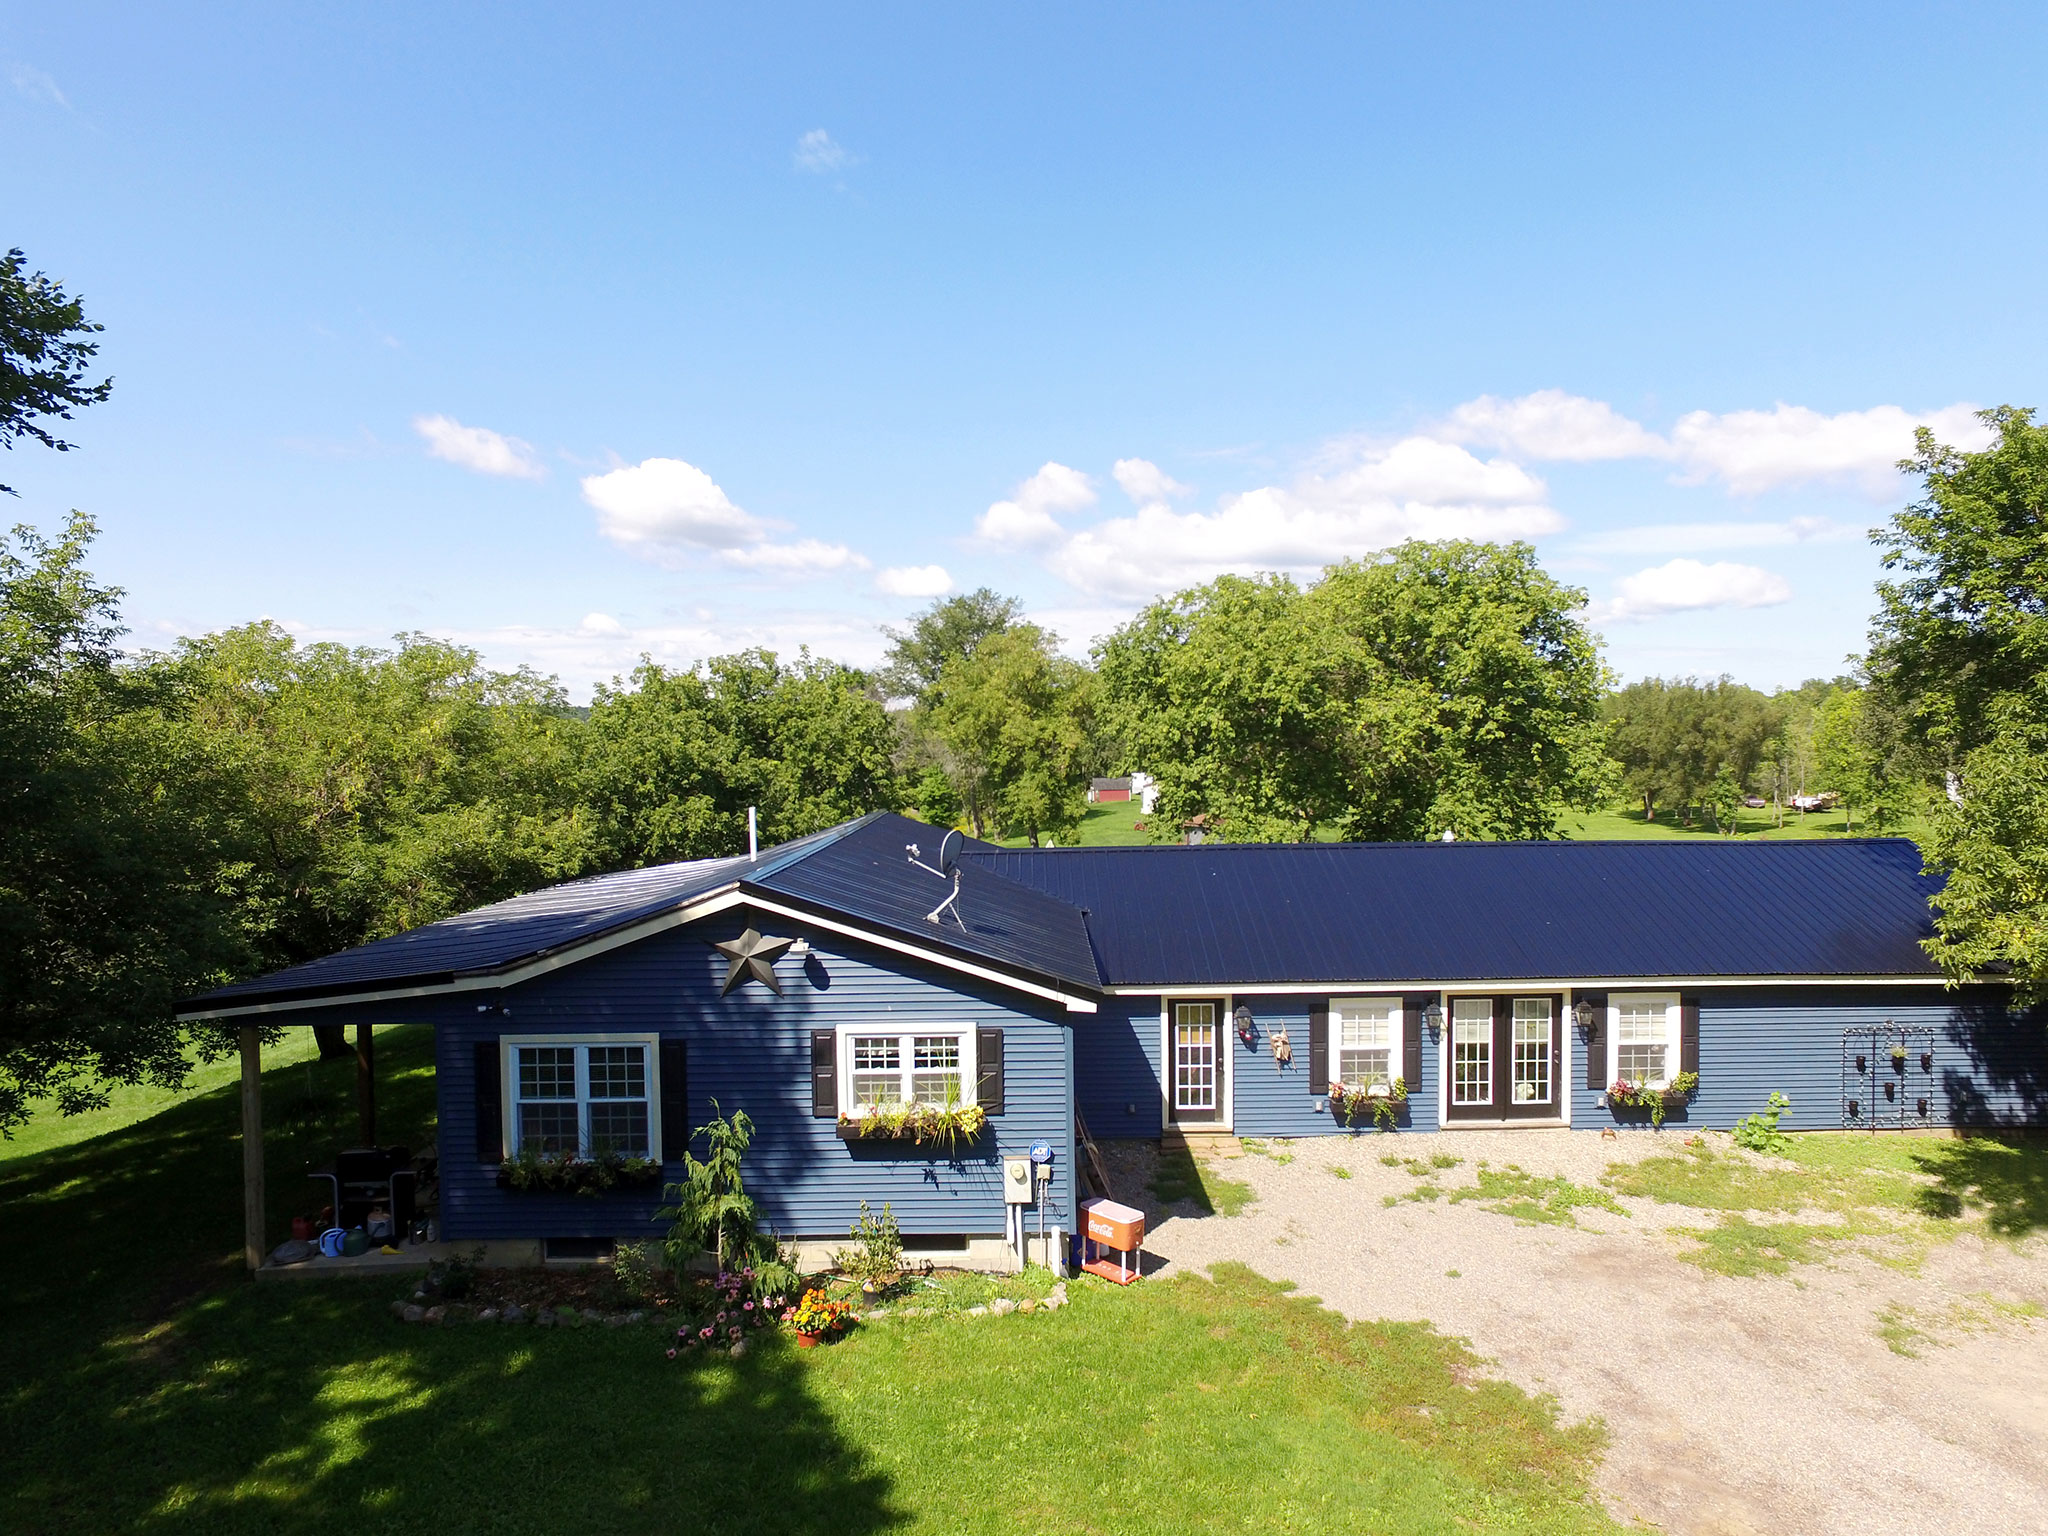 Aerial photo of front of house at property in Canajoharie, New York.